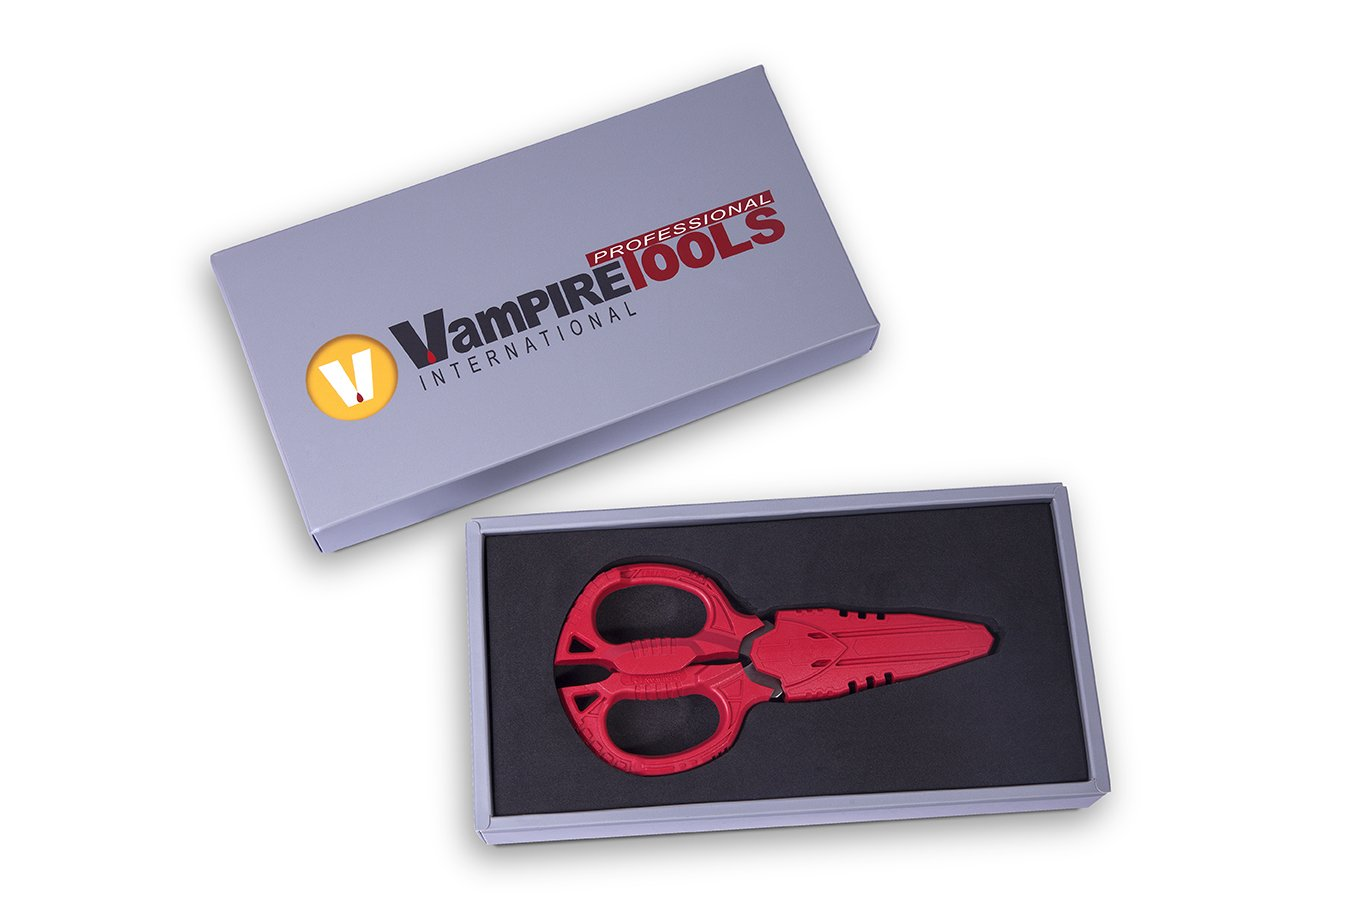 VamPLIERS VT-011 Super Combo Scissors Best Shears 4-in-1 Multi-Purpose Compact design Slice through copper wire Stainless Steel blades/shear leather/slice Nylon Rope/Best Gift (Gift Set Box)